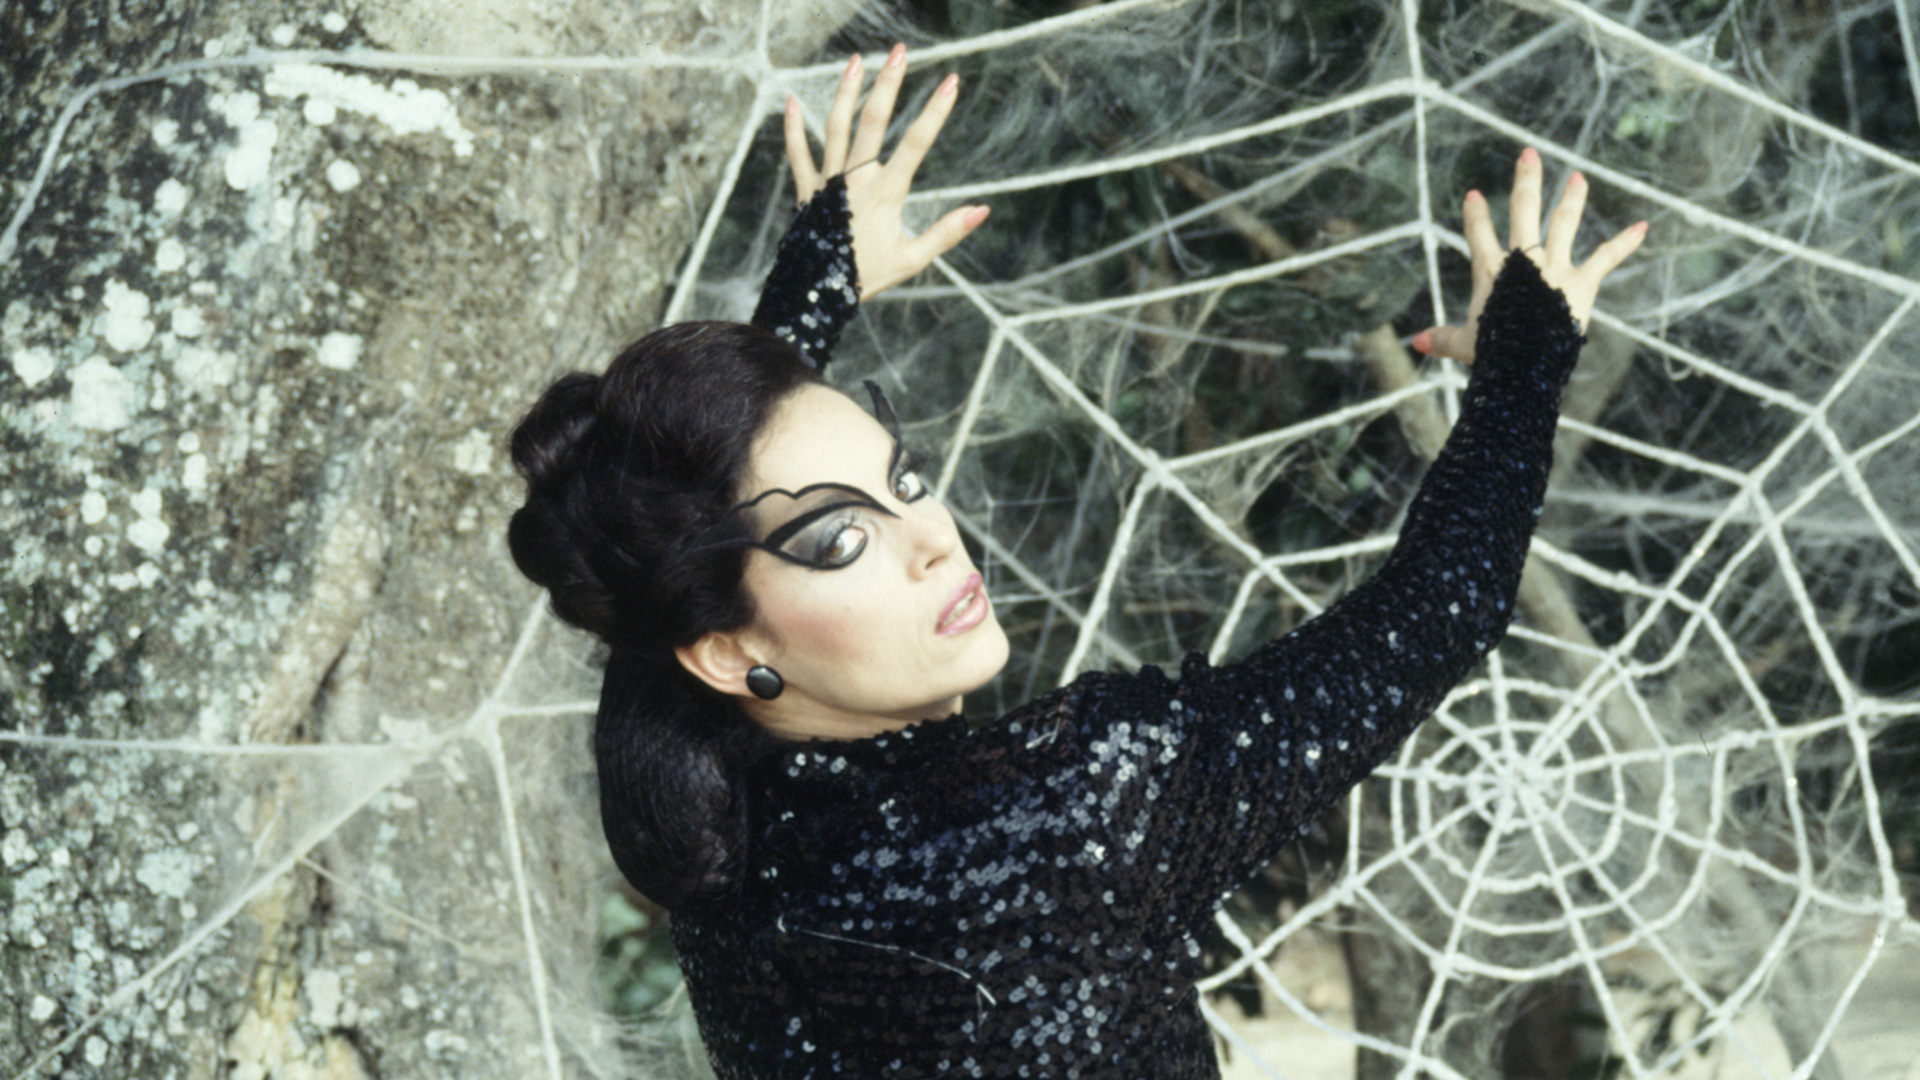 kiss of the spider woman essay Kiss of the spider woman essaysin analyzing the film kiss of the spider woman by hector babenco, the first thing i noticed was how the two cellmates in south america, molina and valentin were two very different people in fact, perfect opposites.